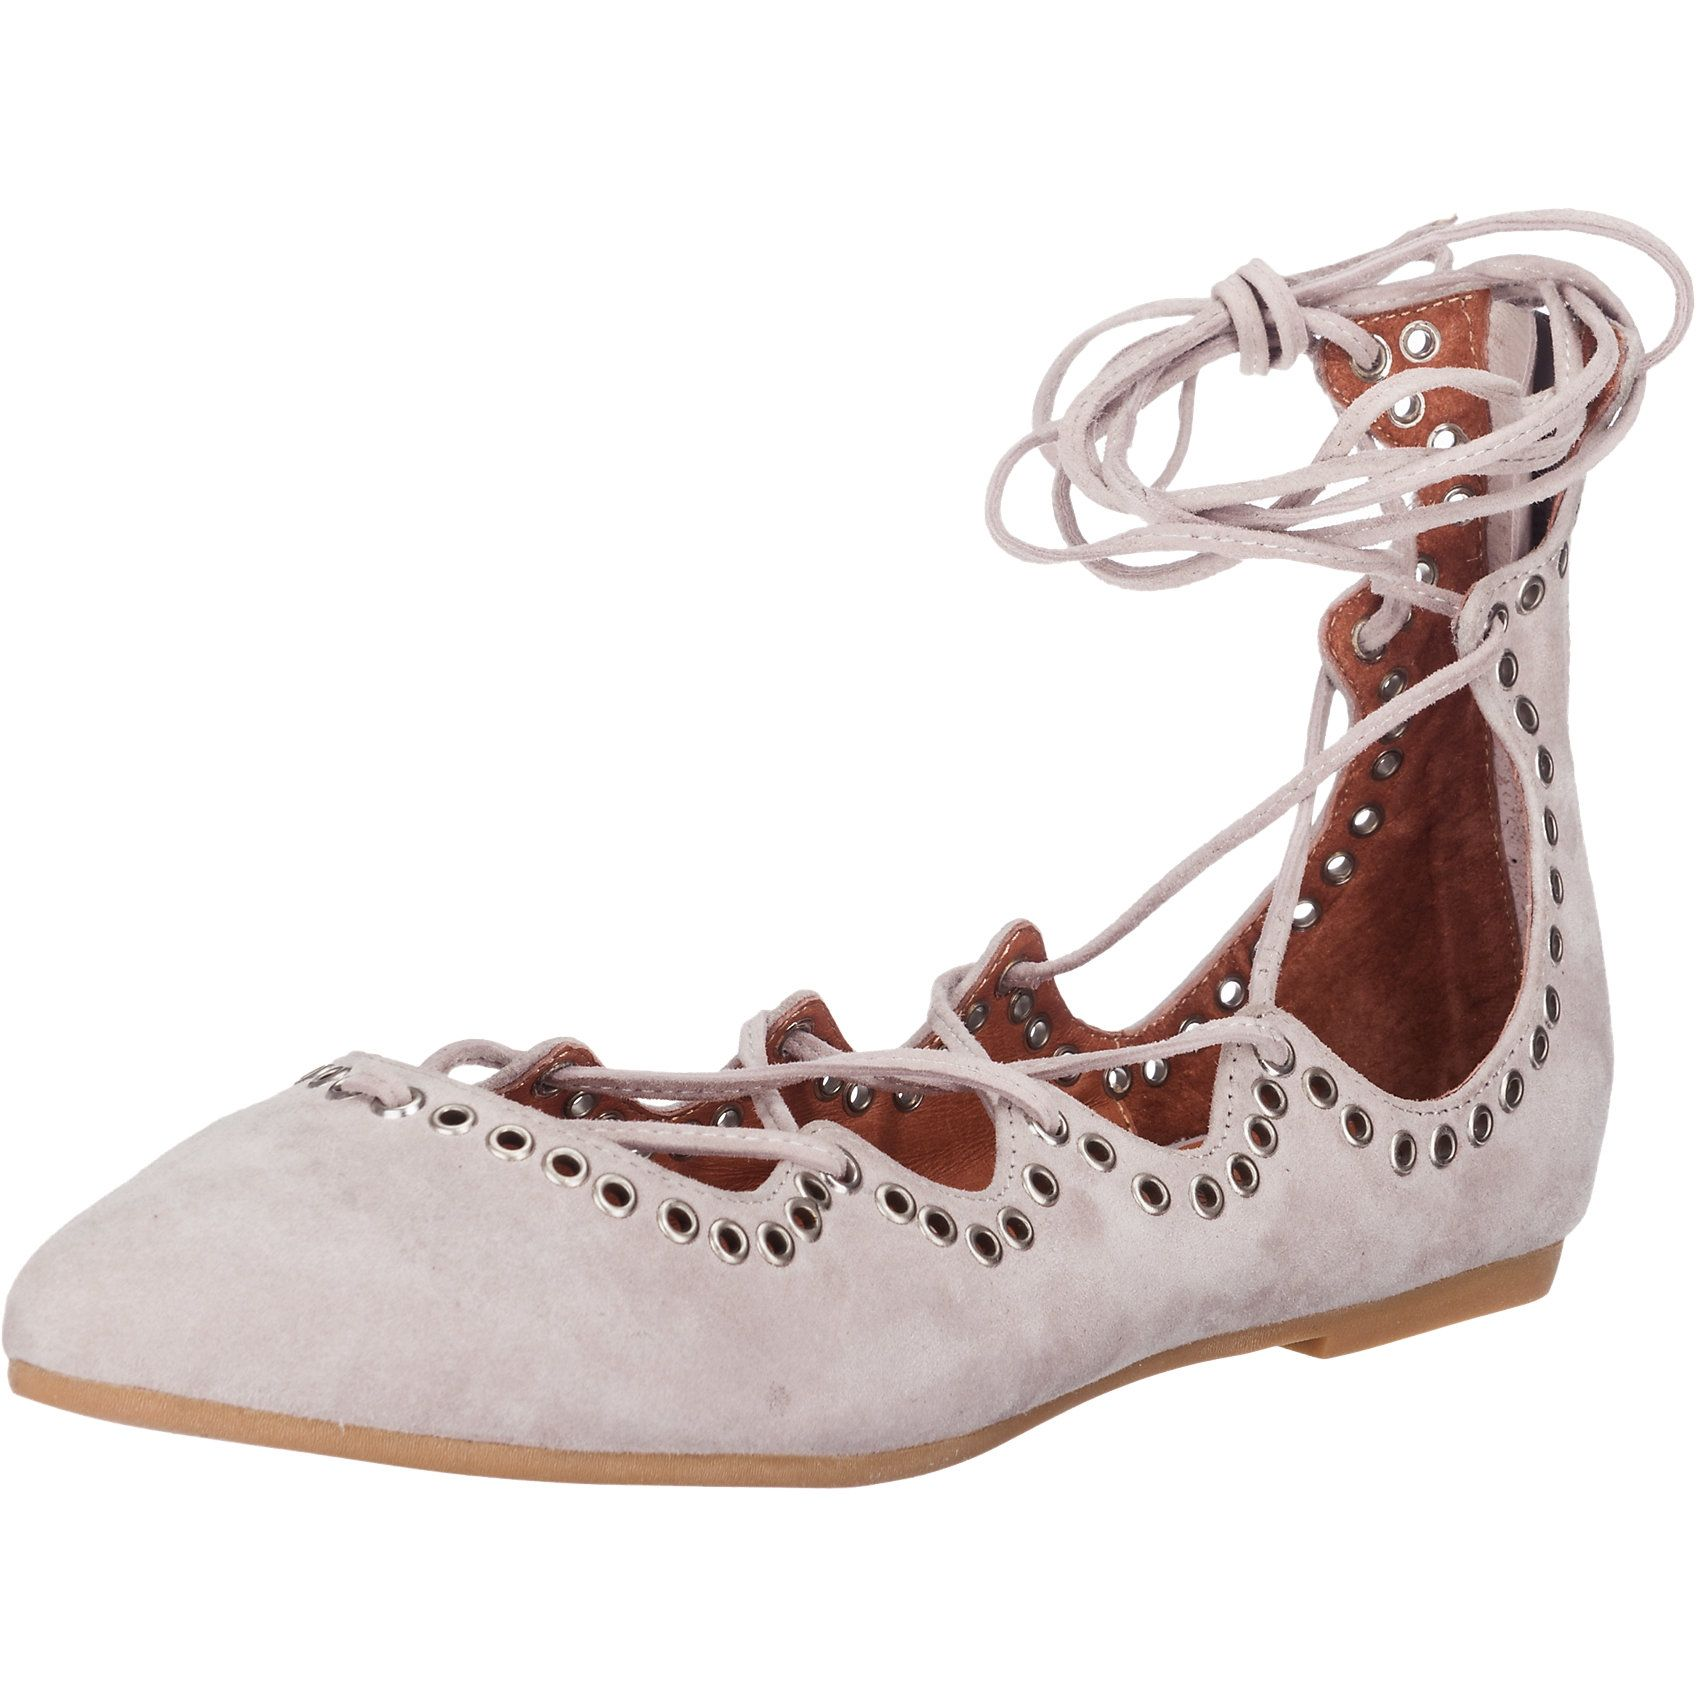 Pin von ABOUT YOU auf ABOUT YOU ❤ Shoes   Schuhe online